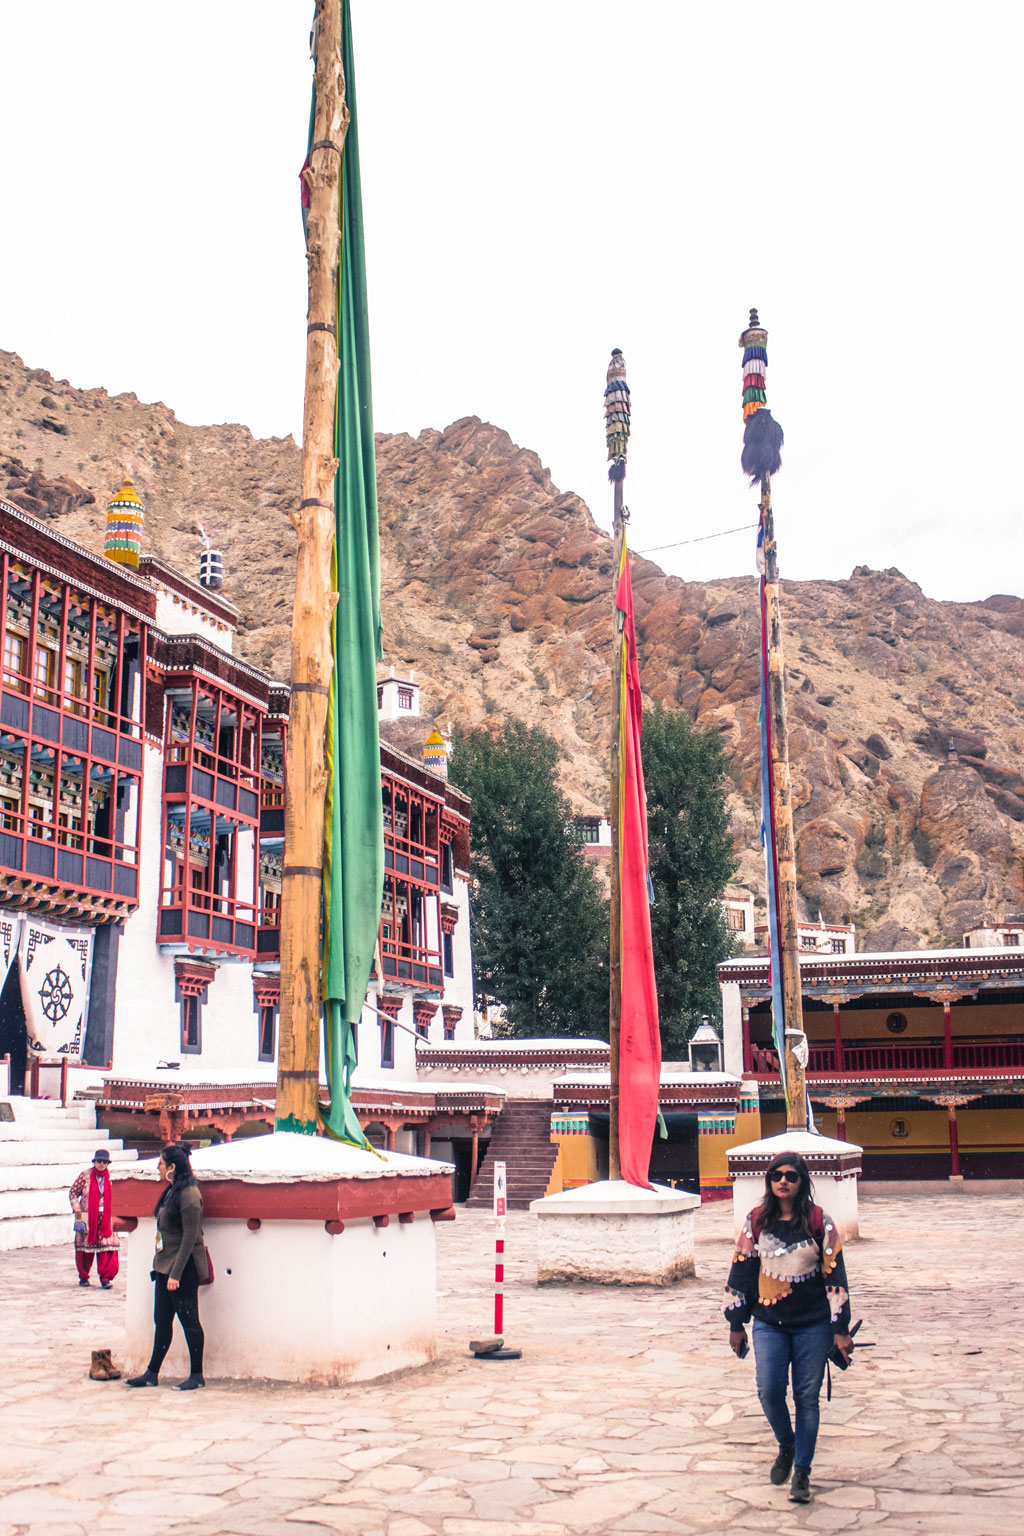 The entrance complex of the Hemis Monastery from where one can venture inside to see the different components that make up this historical Buddhist home